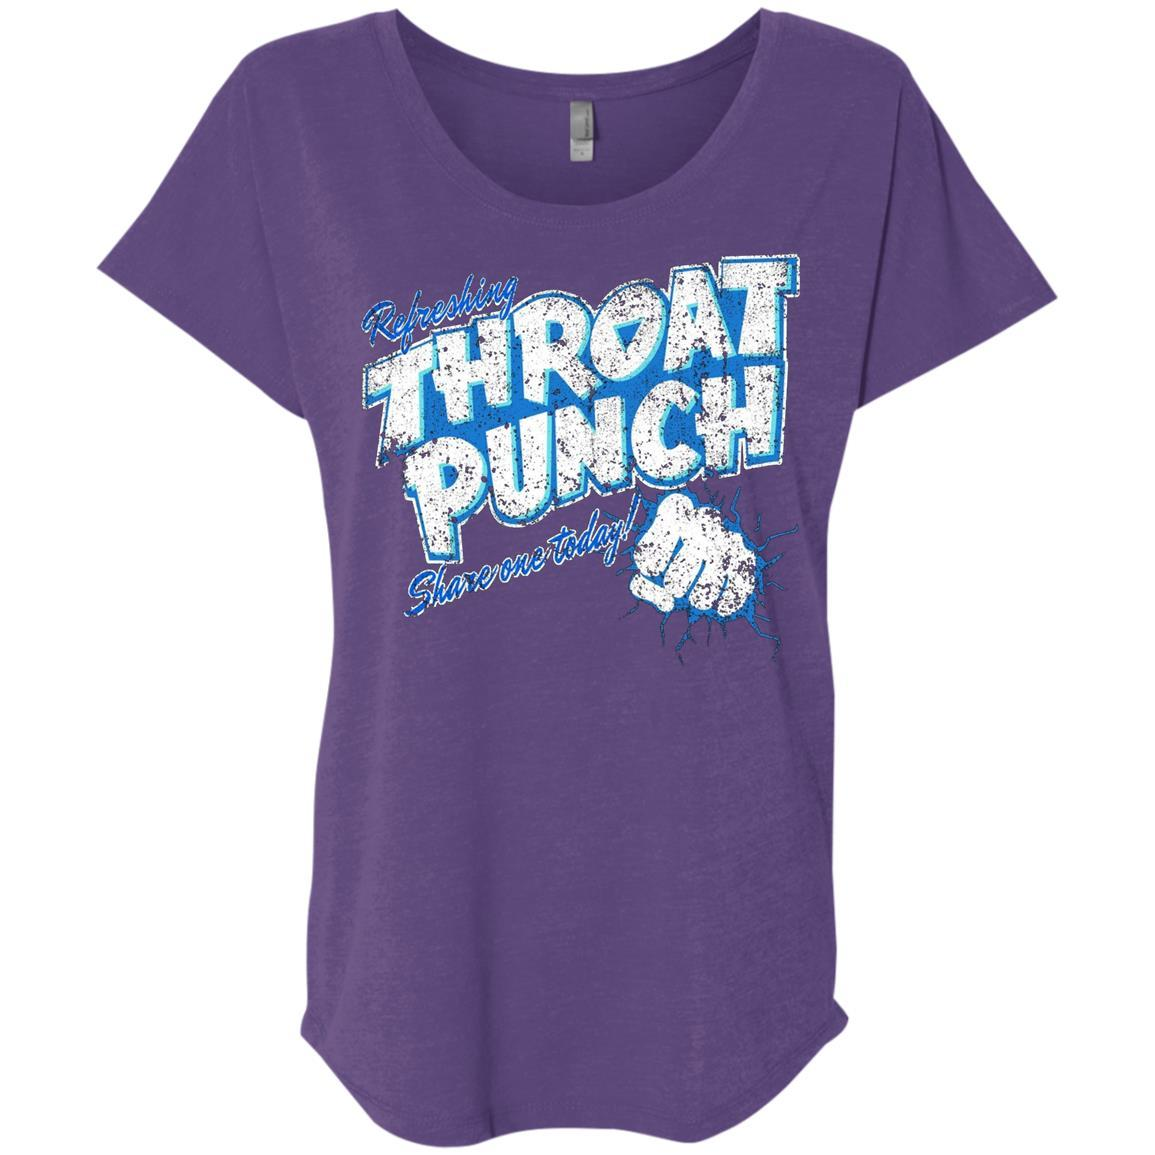 Refreshing Throat Punch Grunge - Ladies' Triblend Dolman Sleeve Style / Color / Size